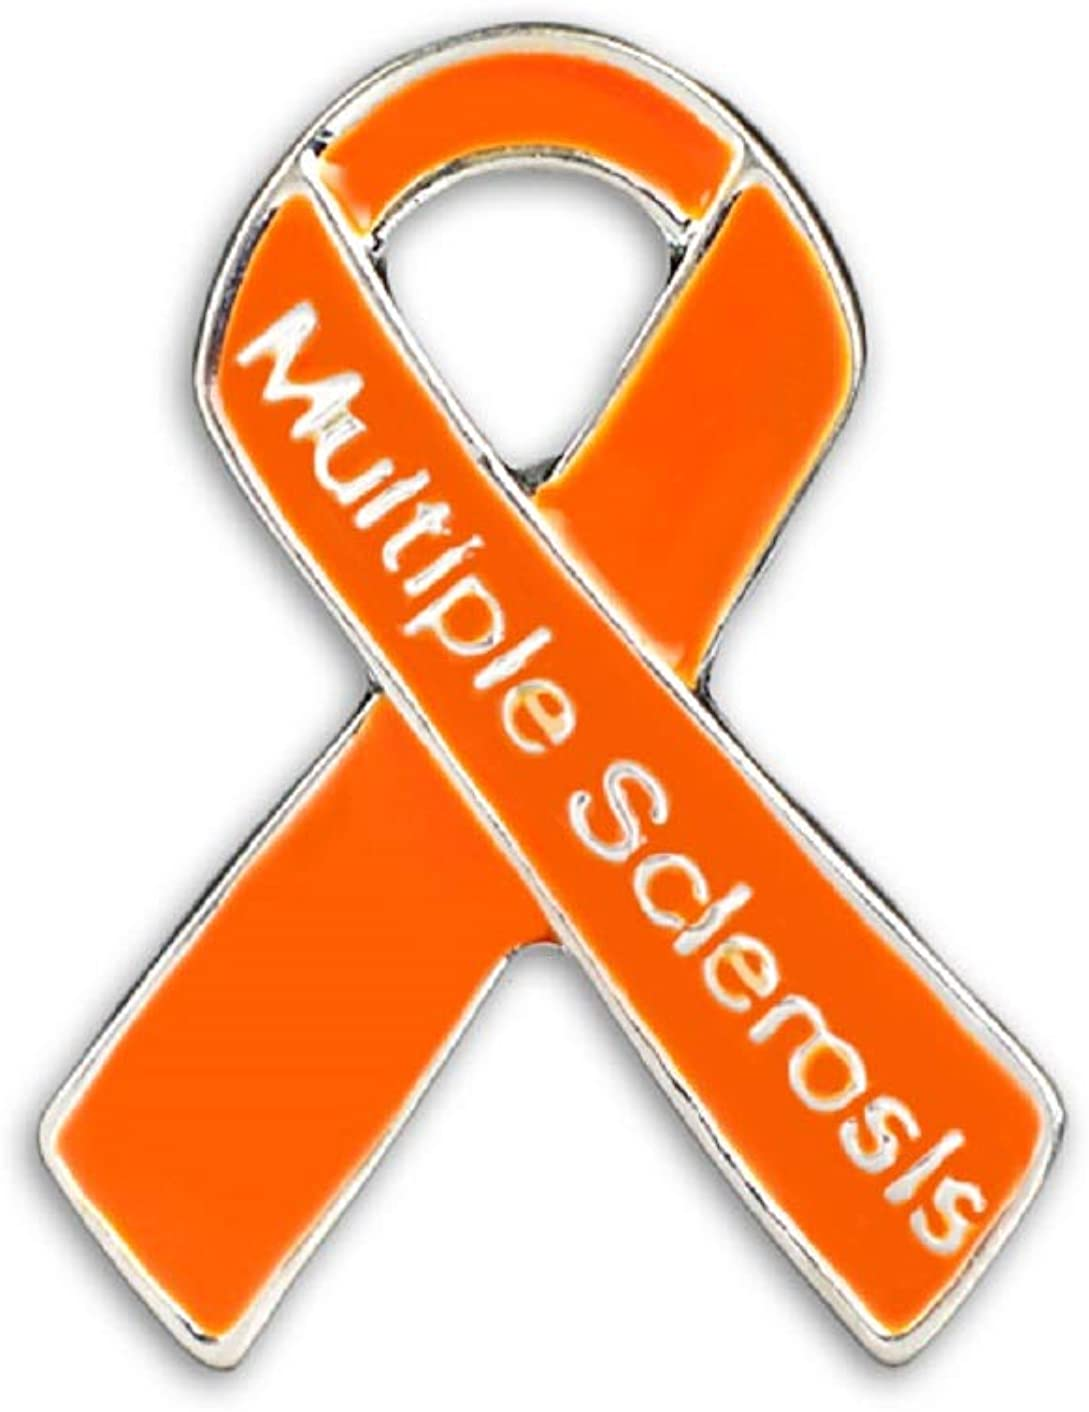 Fundraising For A Cause | Multiple Sclerosis Awareness Pins - Orange Ribbon Pins for MS Awareness